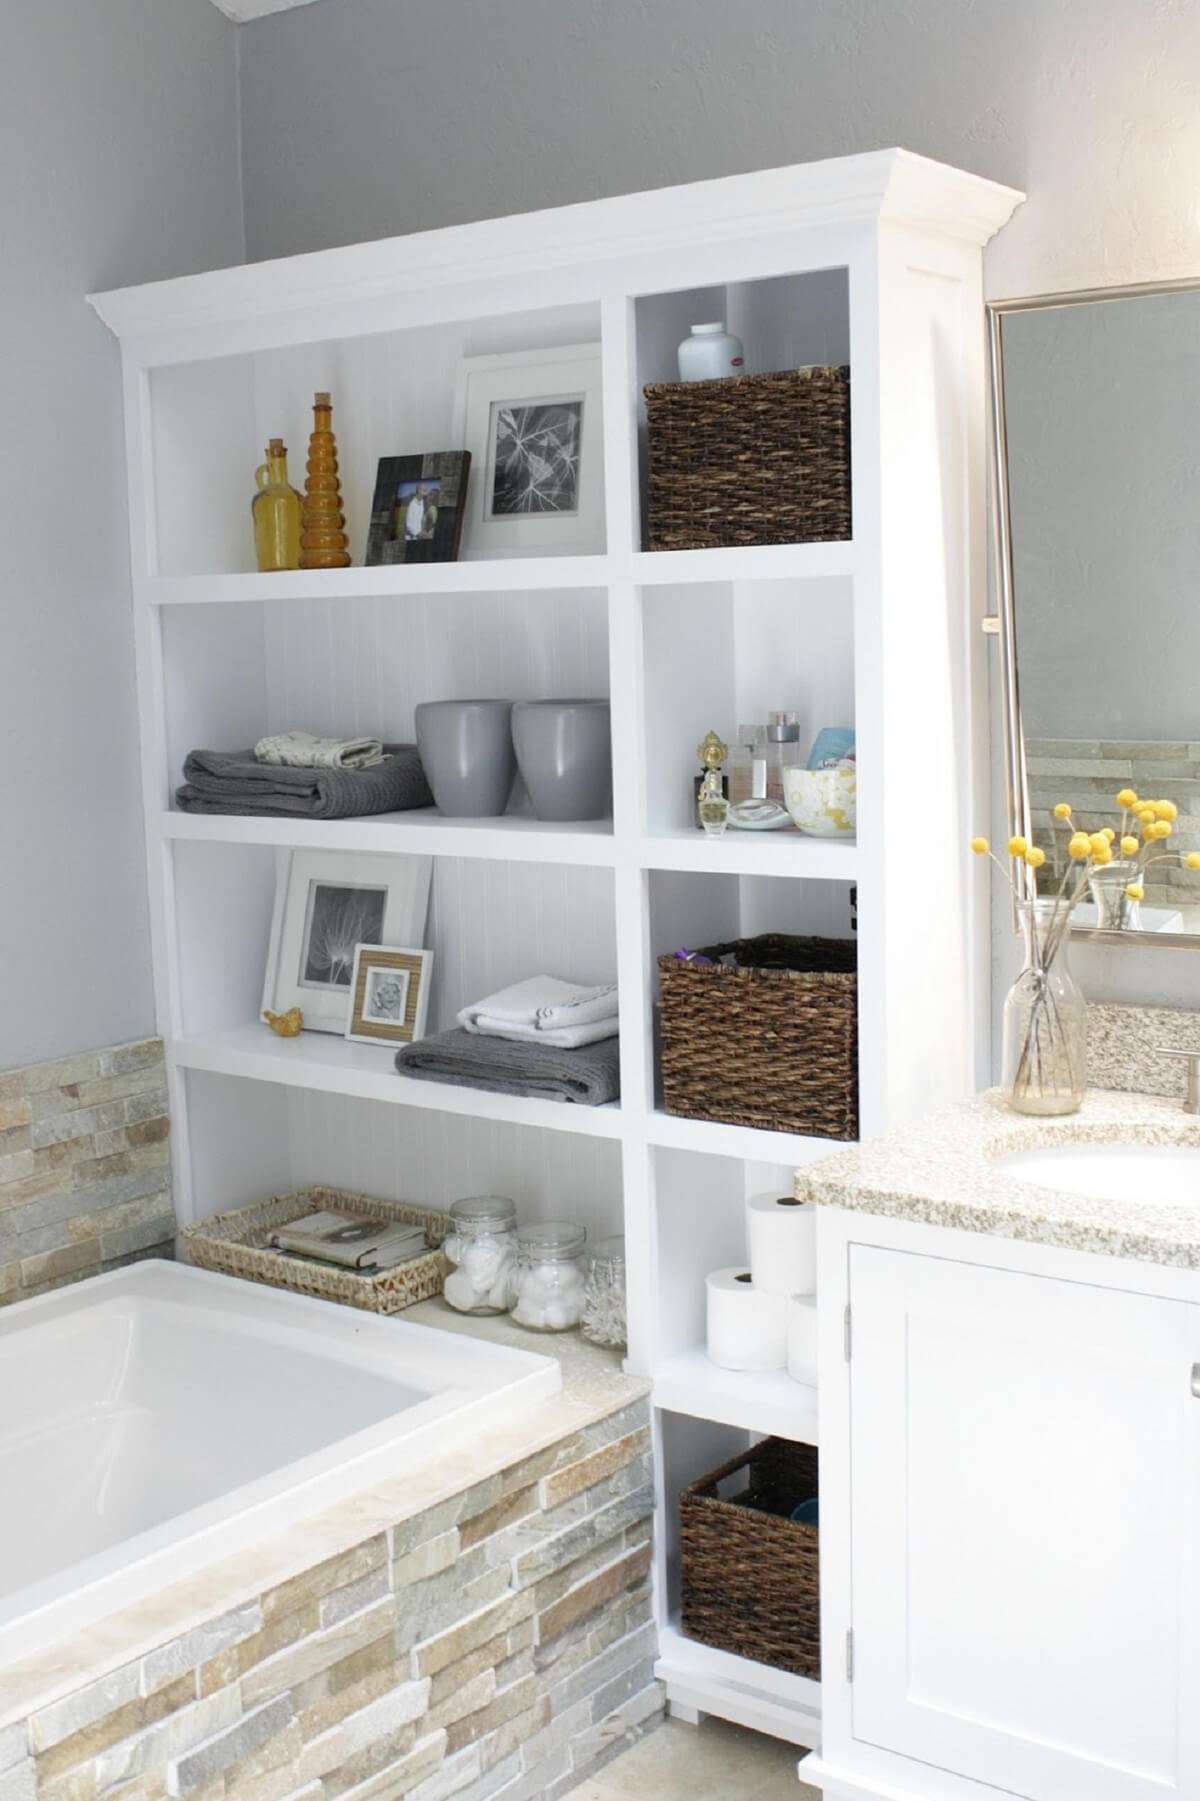 Best Small Bathroom Storage Layout - Bathroom Design Ideas Gallery ...